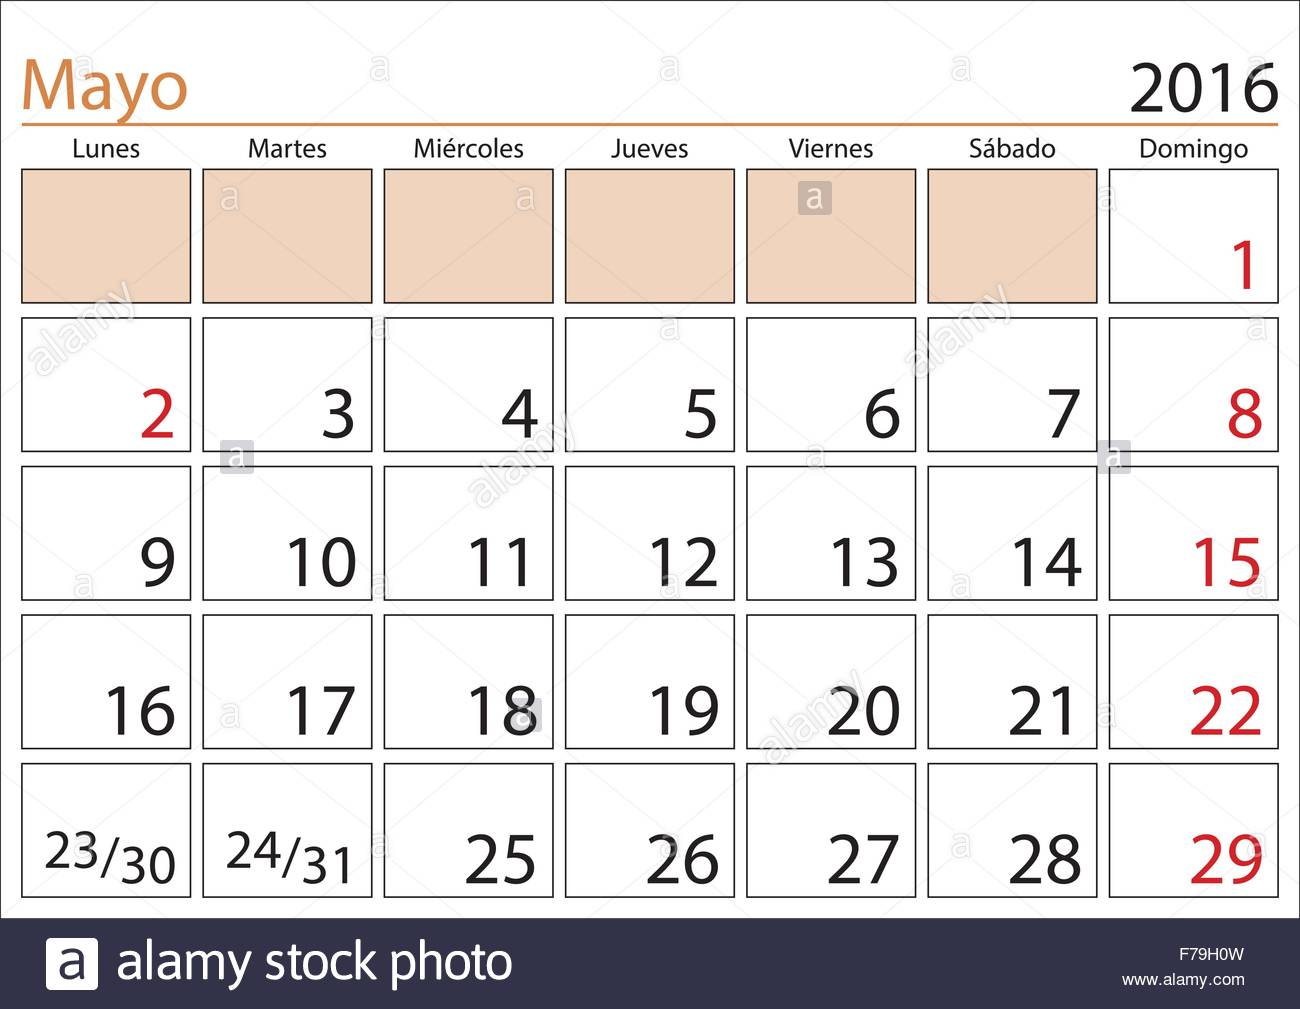 Calendario 2016.May Month In A Year 2016 Calendar In Spanish Mayo 2016